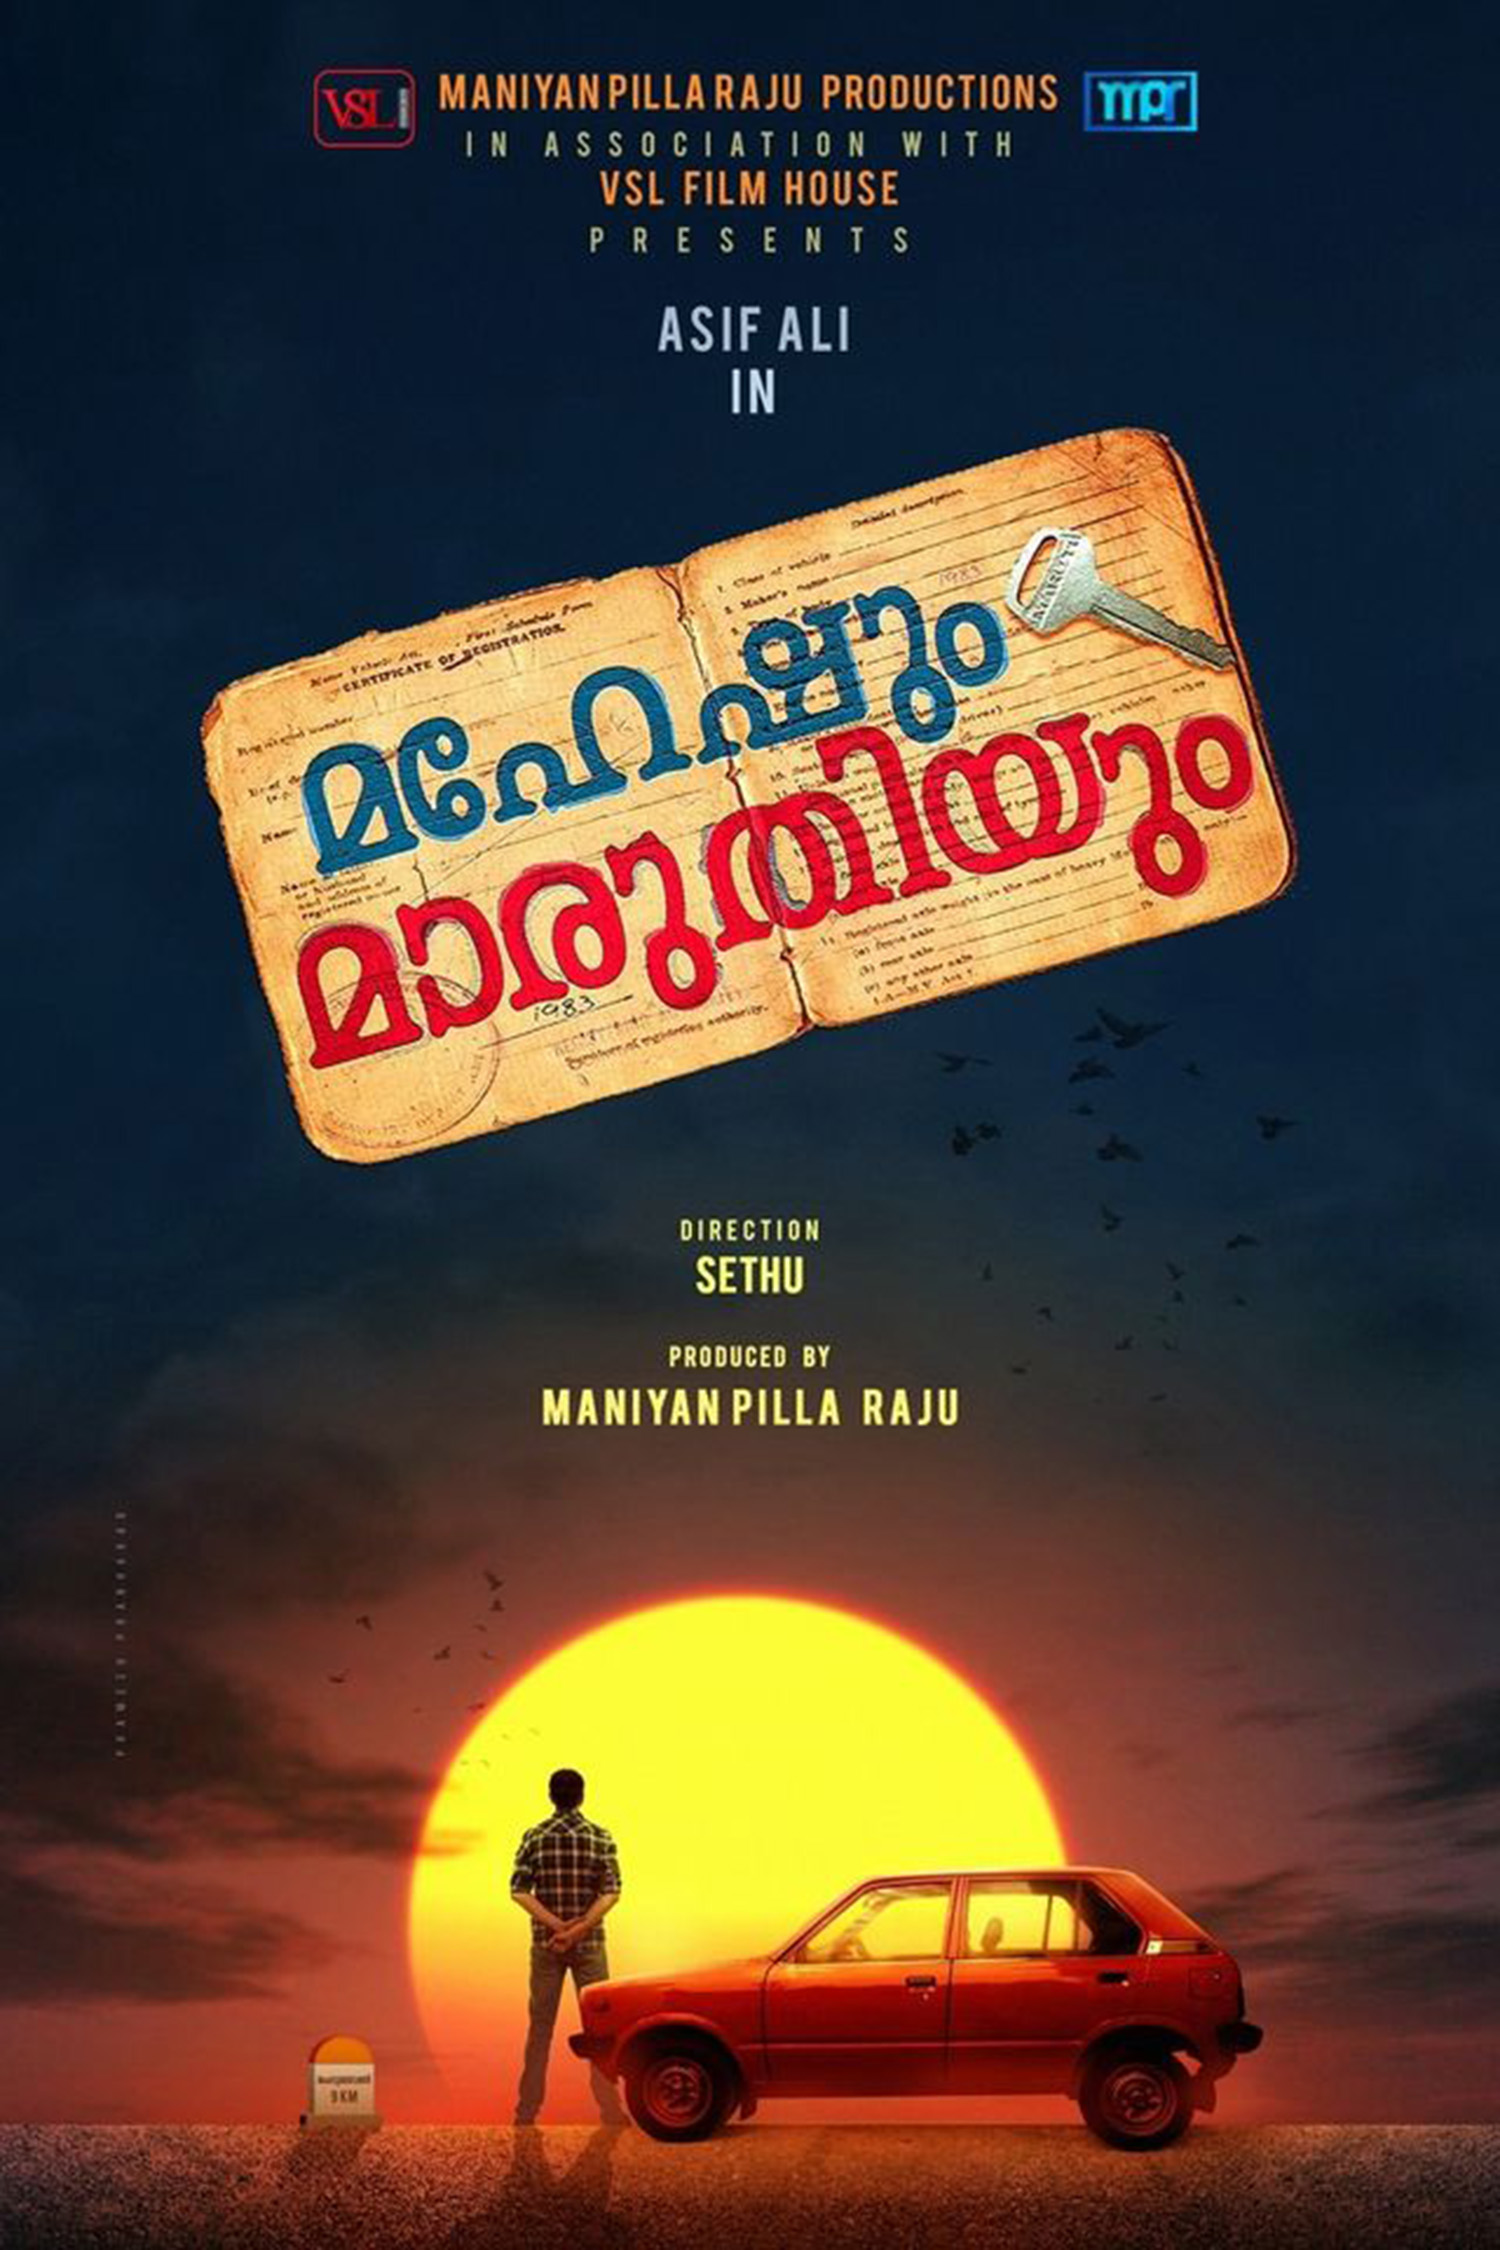 Maheshum Maruthiyum movie,malayalam actor asif ali,actor asif ali new malayalam cinema 2020,first look poster of Asif Ali's new film Maheshum Maruthiyum,Asif Ali's new film Maheshum Maruyum,director thisethu,asif ali director sethu new film,malayalam cinema,new mollywood cinema,asif ali upcoming movies 2020